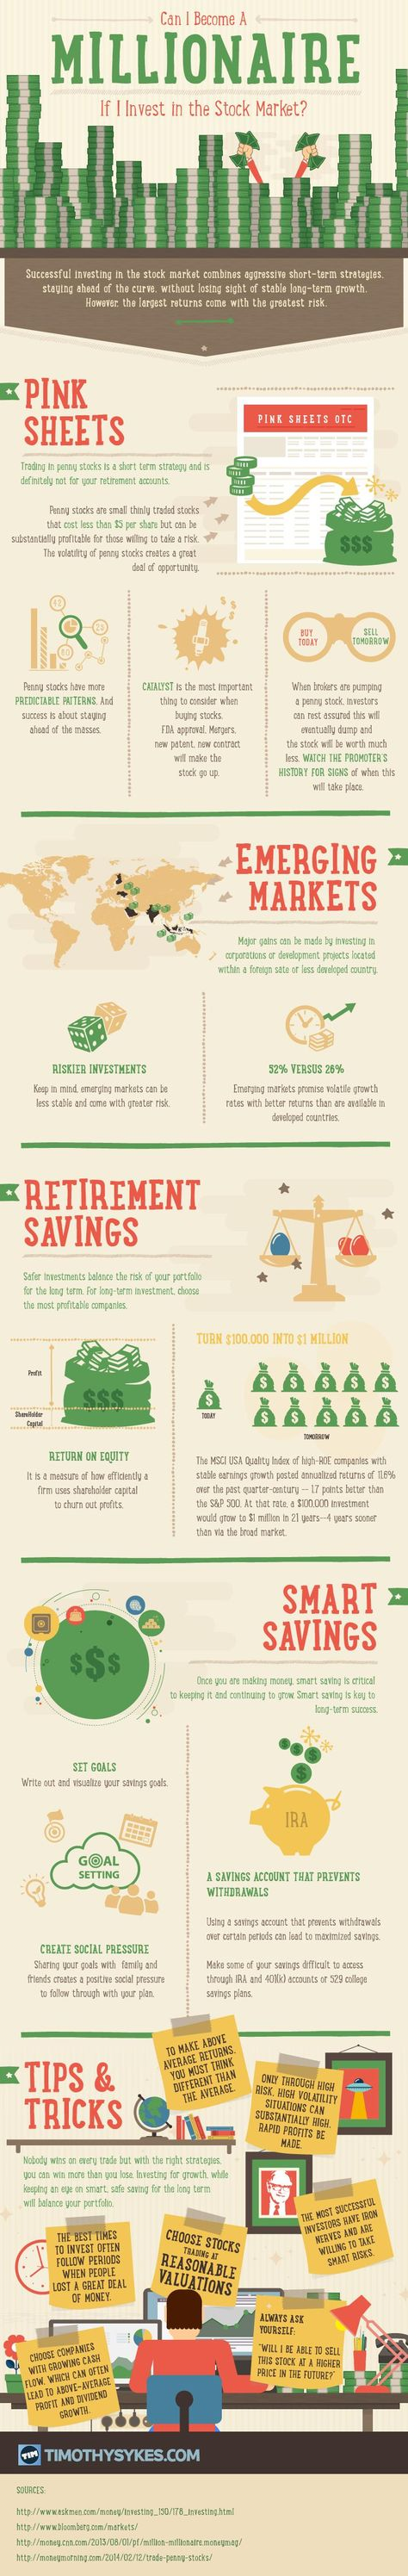 Can I Become A Millionaire If I Invest In The Stock Market? #infographic